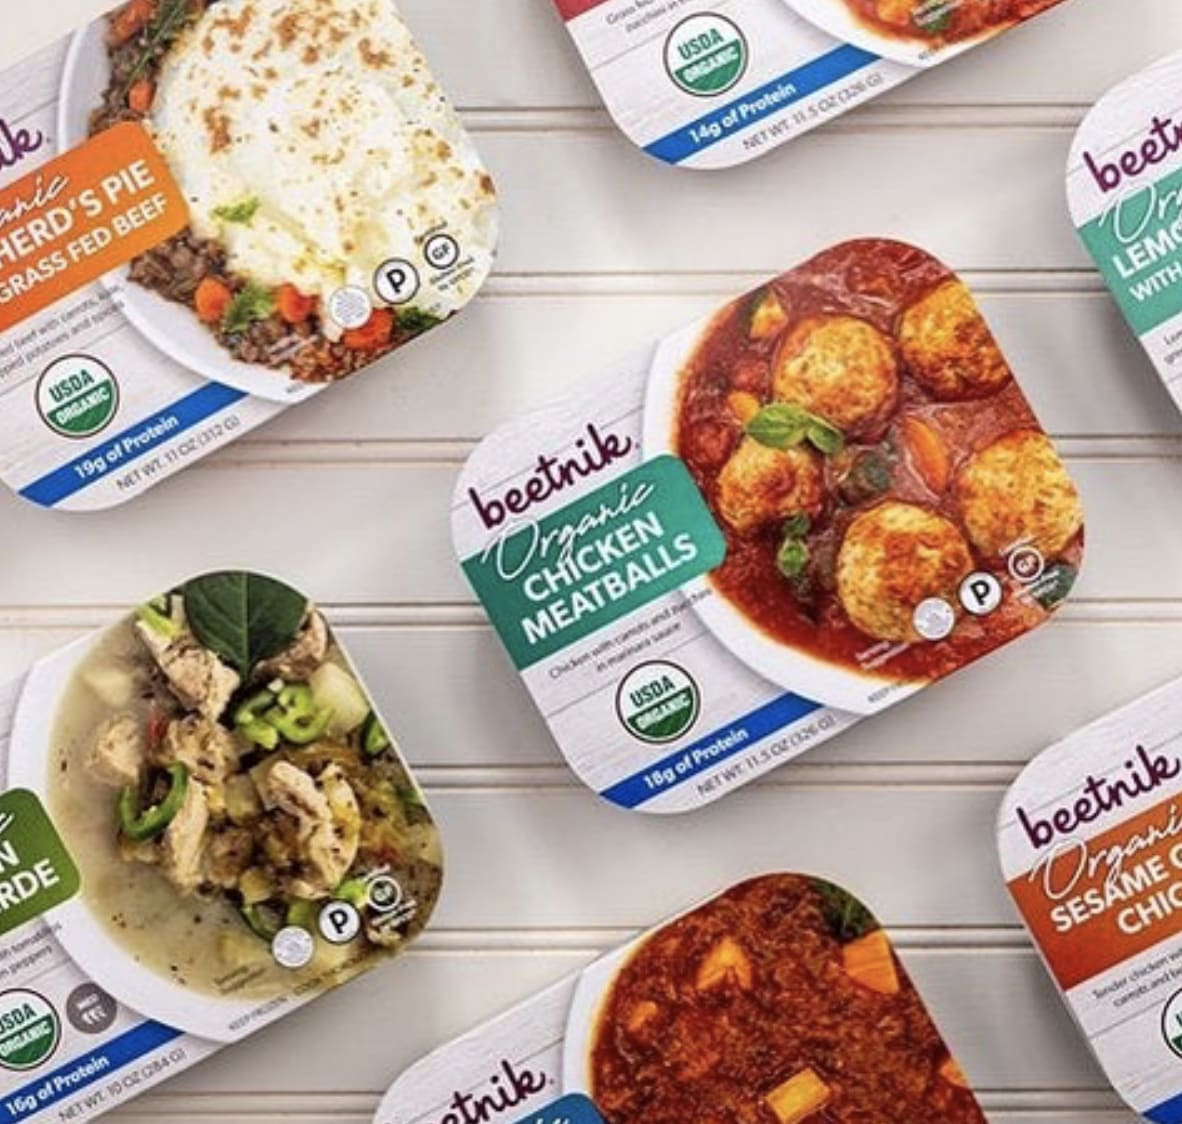 Beetnik Organic frozen meals laid out on a white board.